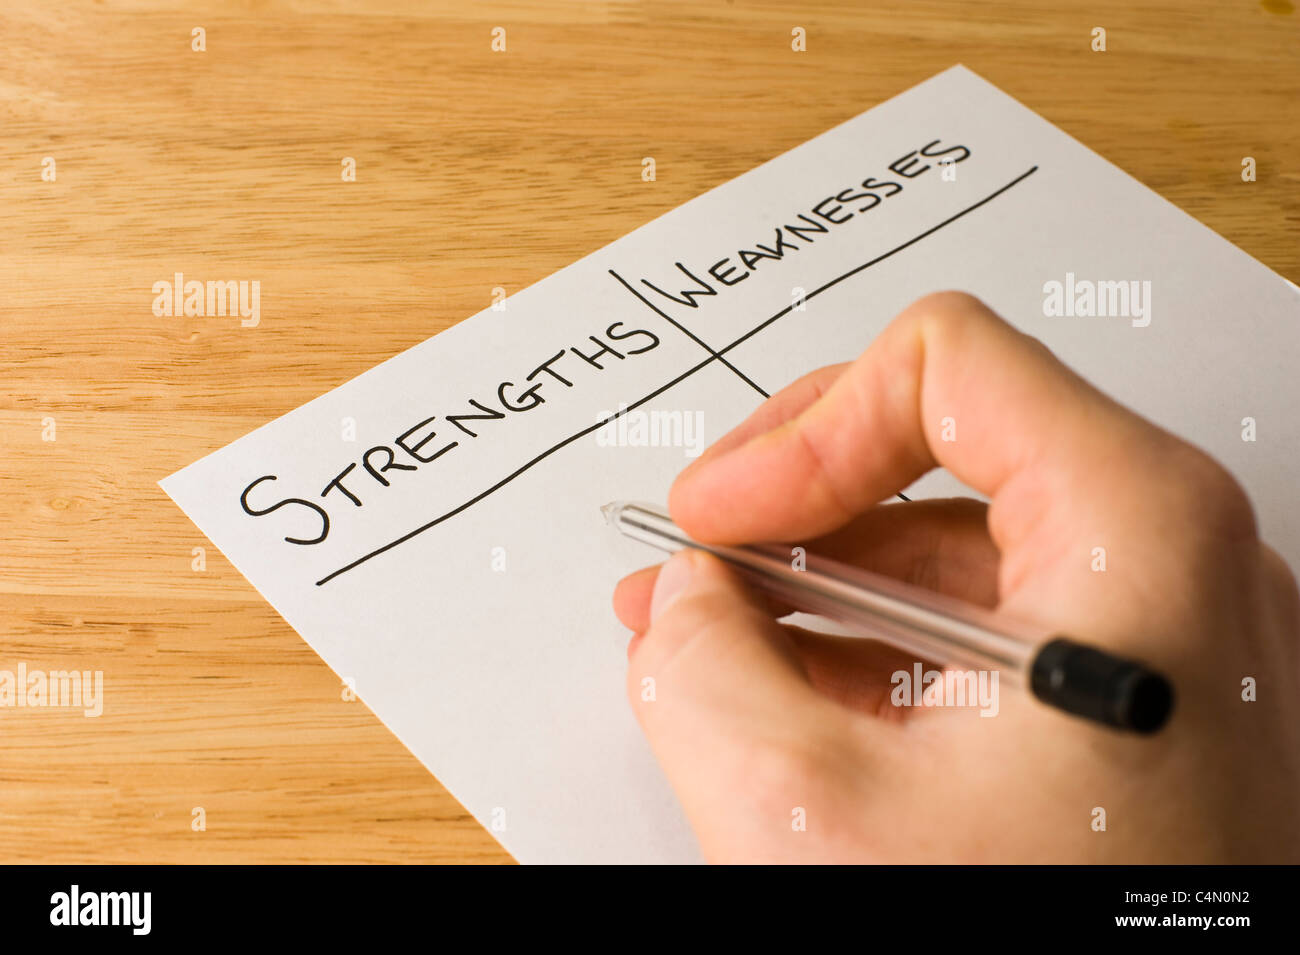 Business man writing a list weighing up the strengths and weaknesses of a business - Stock Image